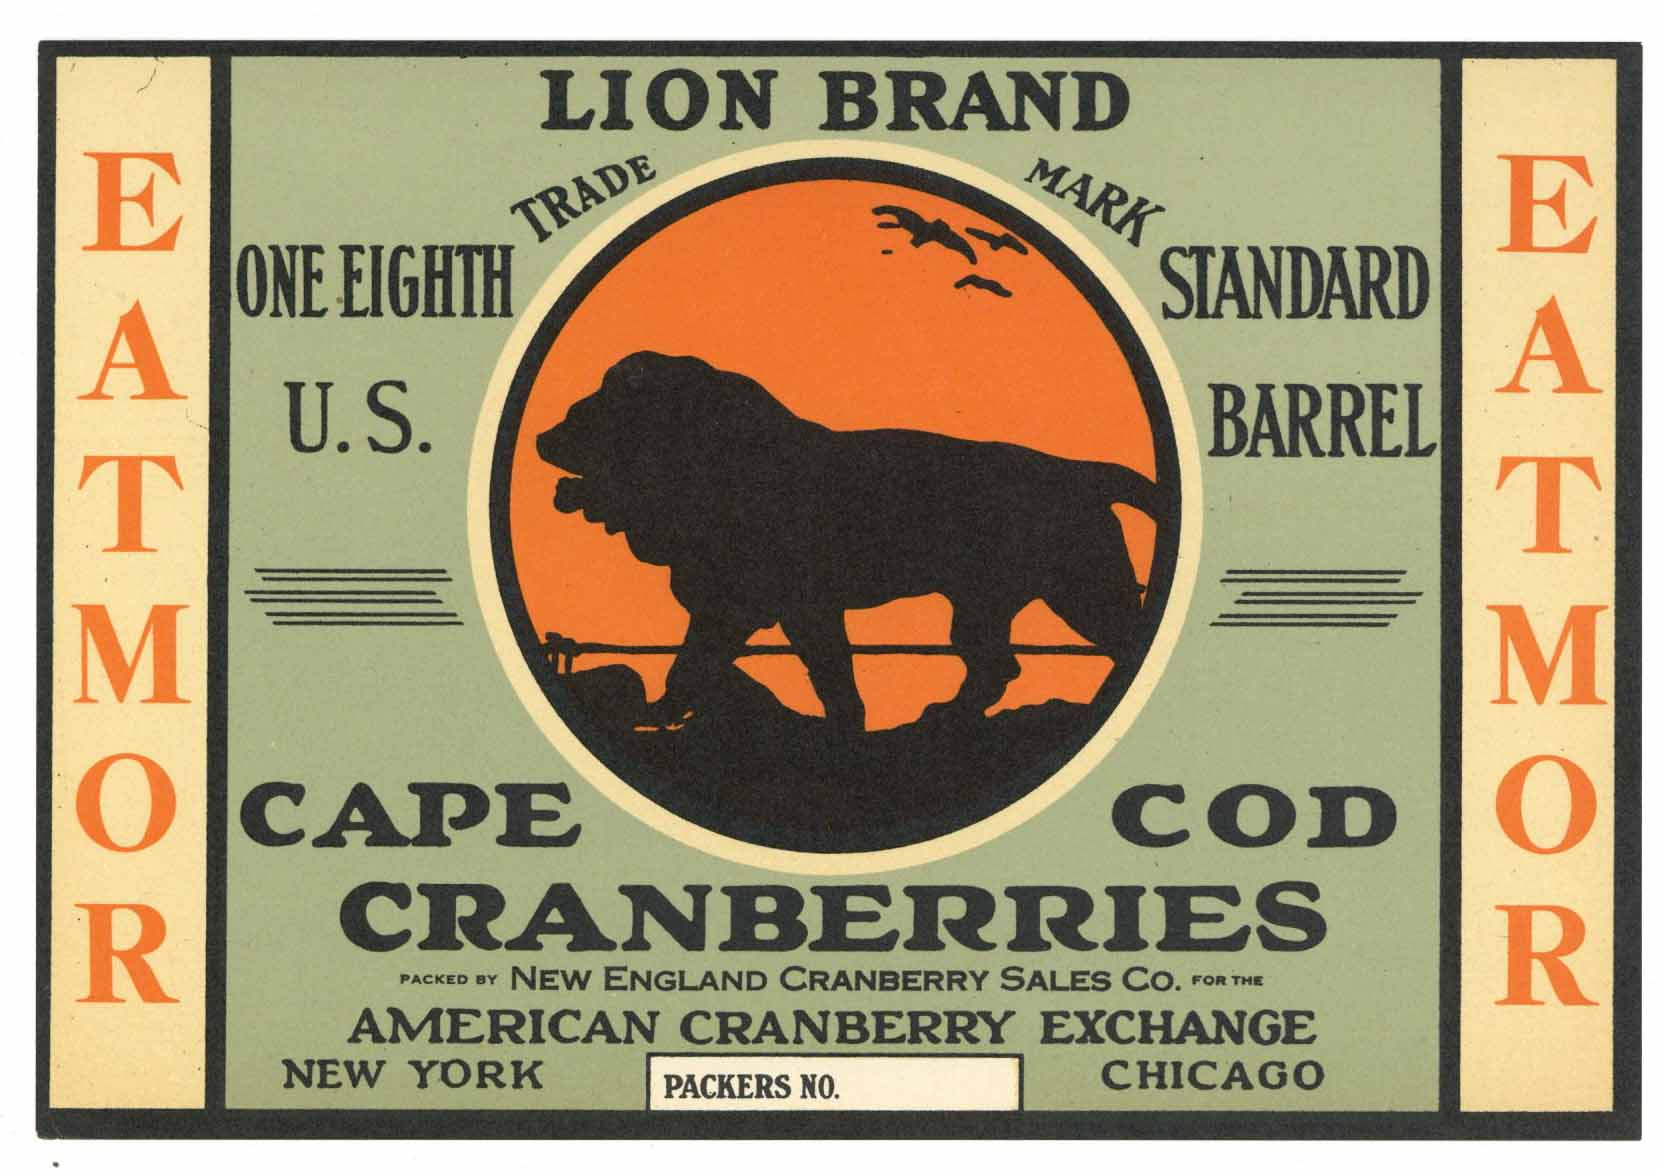 Lion Brand Vintage Cape Cod Cranberry Crate Label, 1/8, smaller